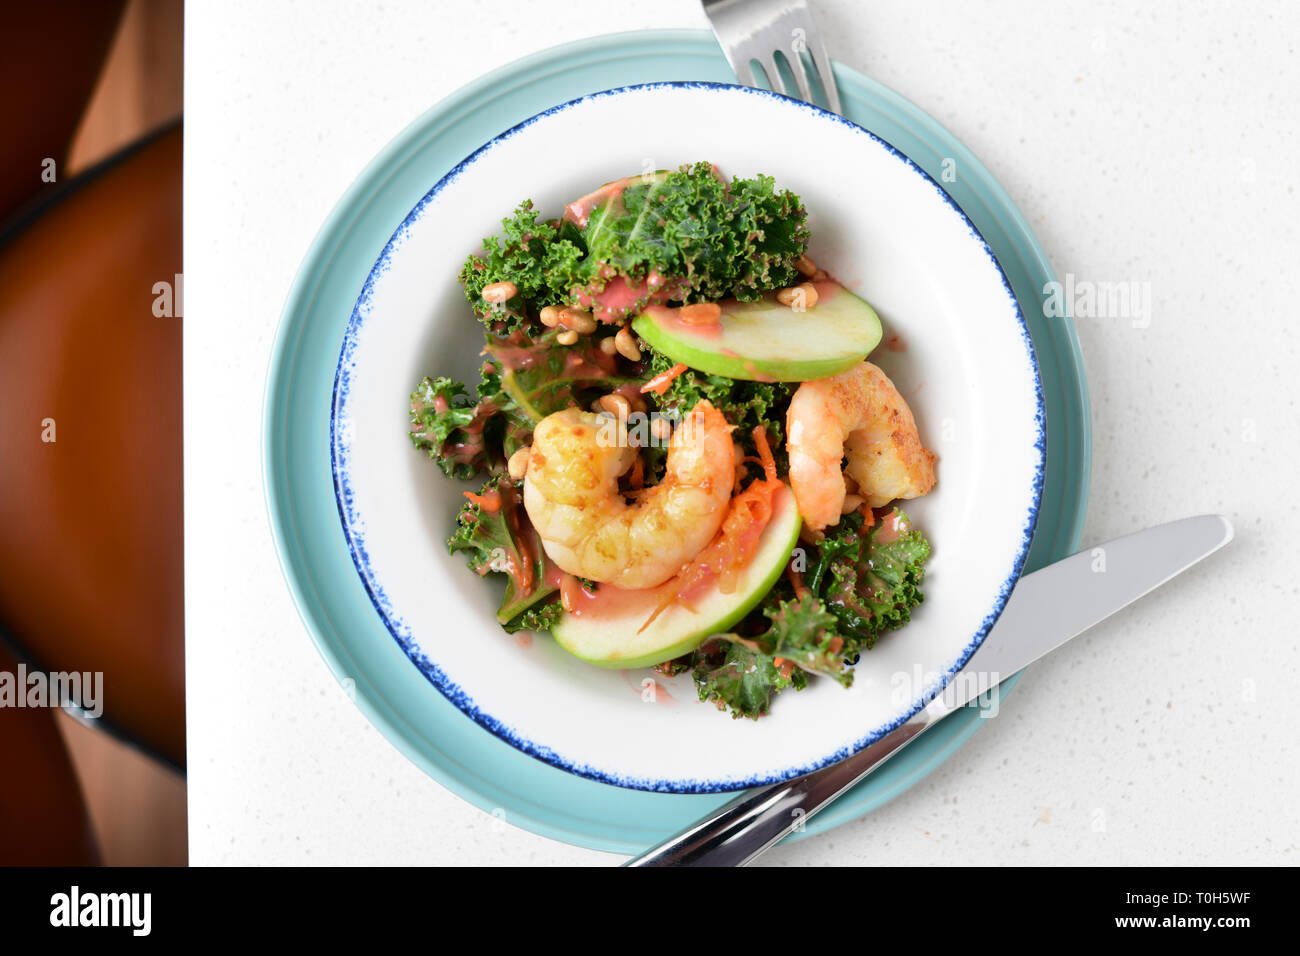 food-kale-salad-with-shrimp-and-apple-on-it-in-a-home-kitchen-T0H5WF.jpg